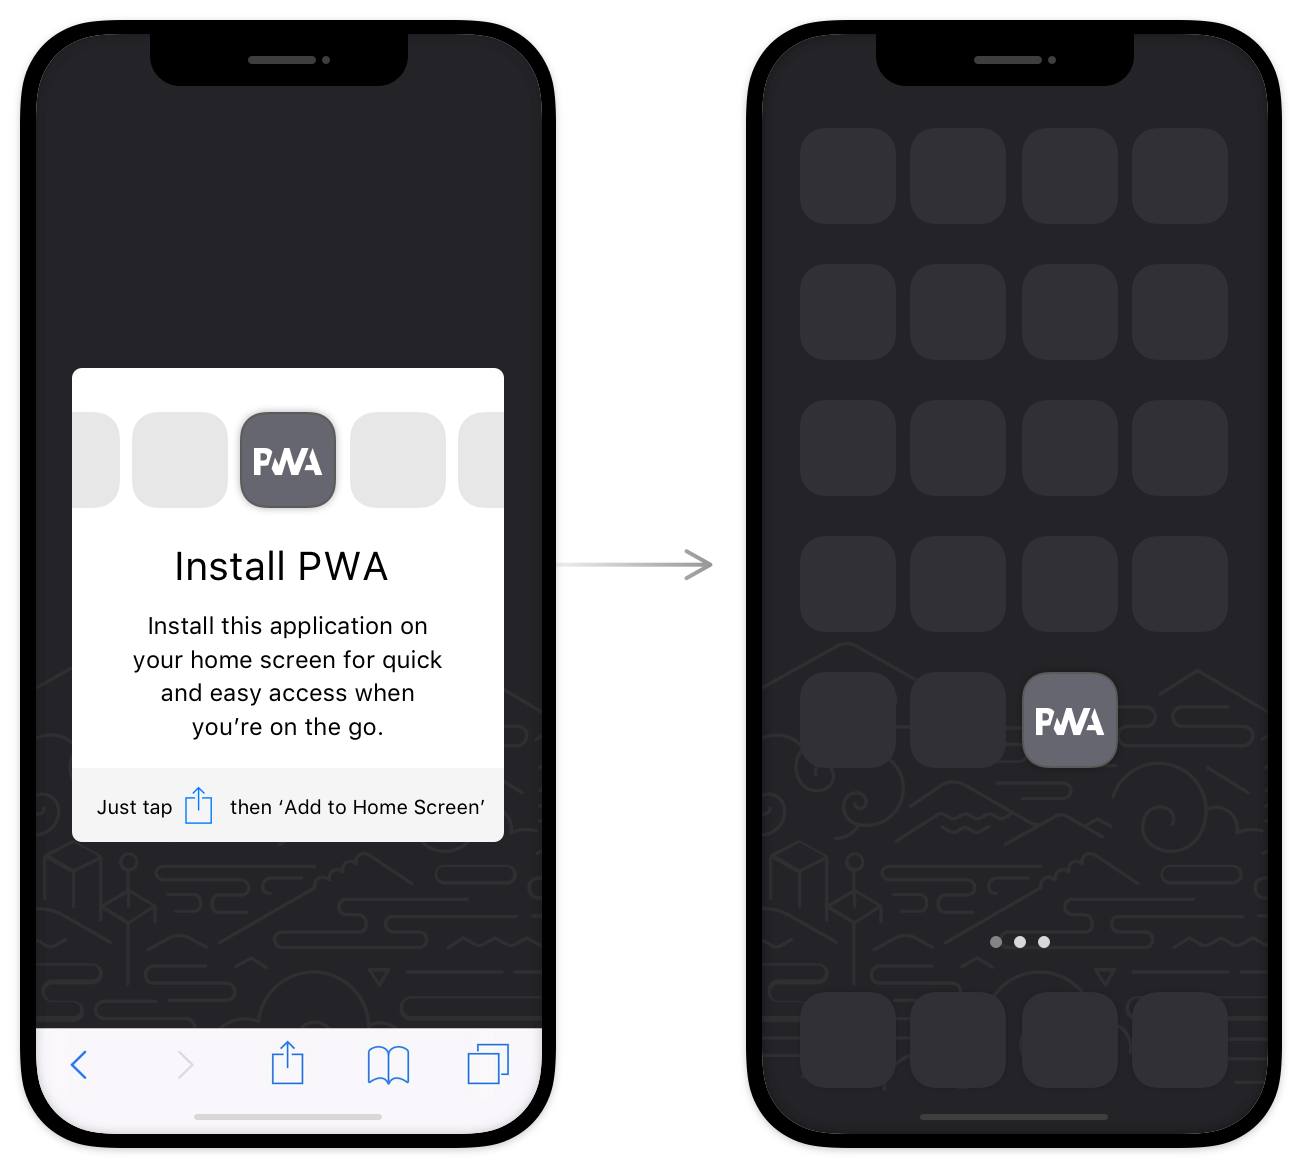 An image showing what installing a progressive web app might look like.